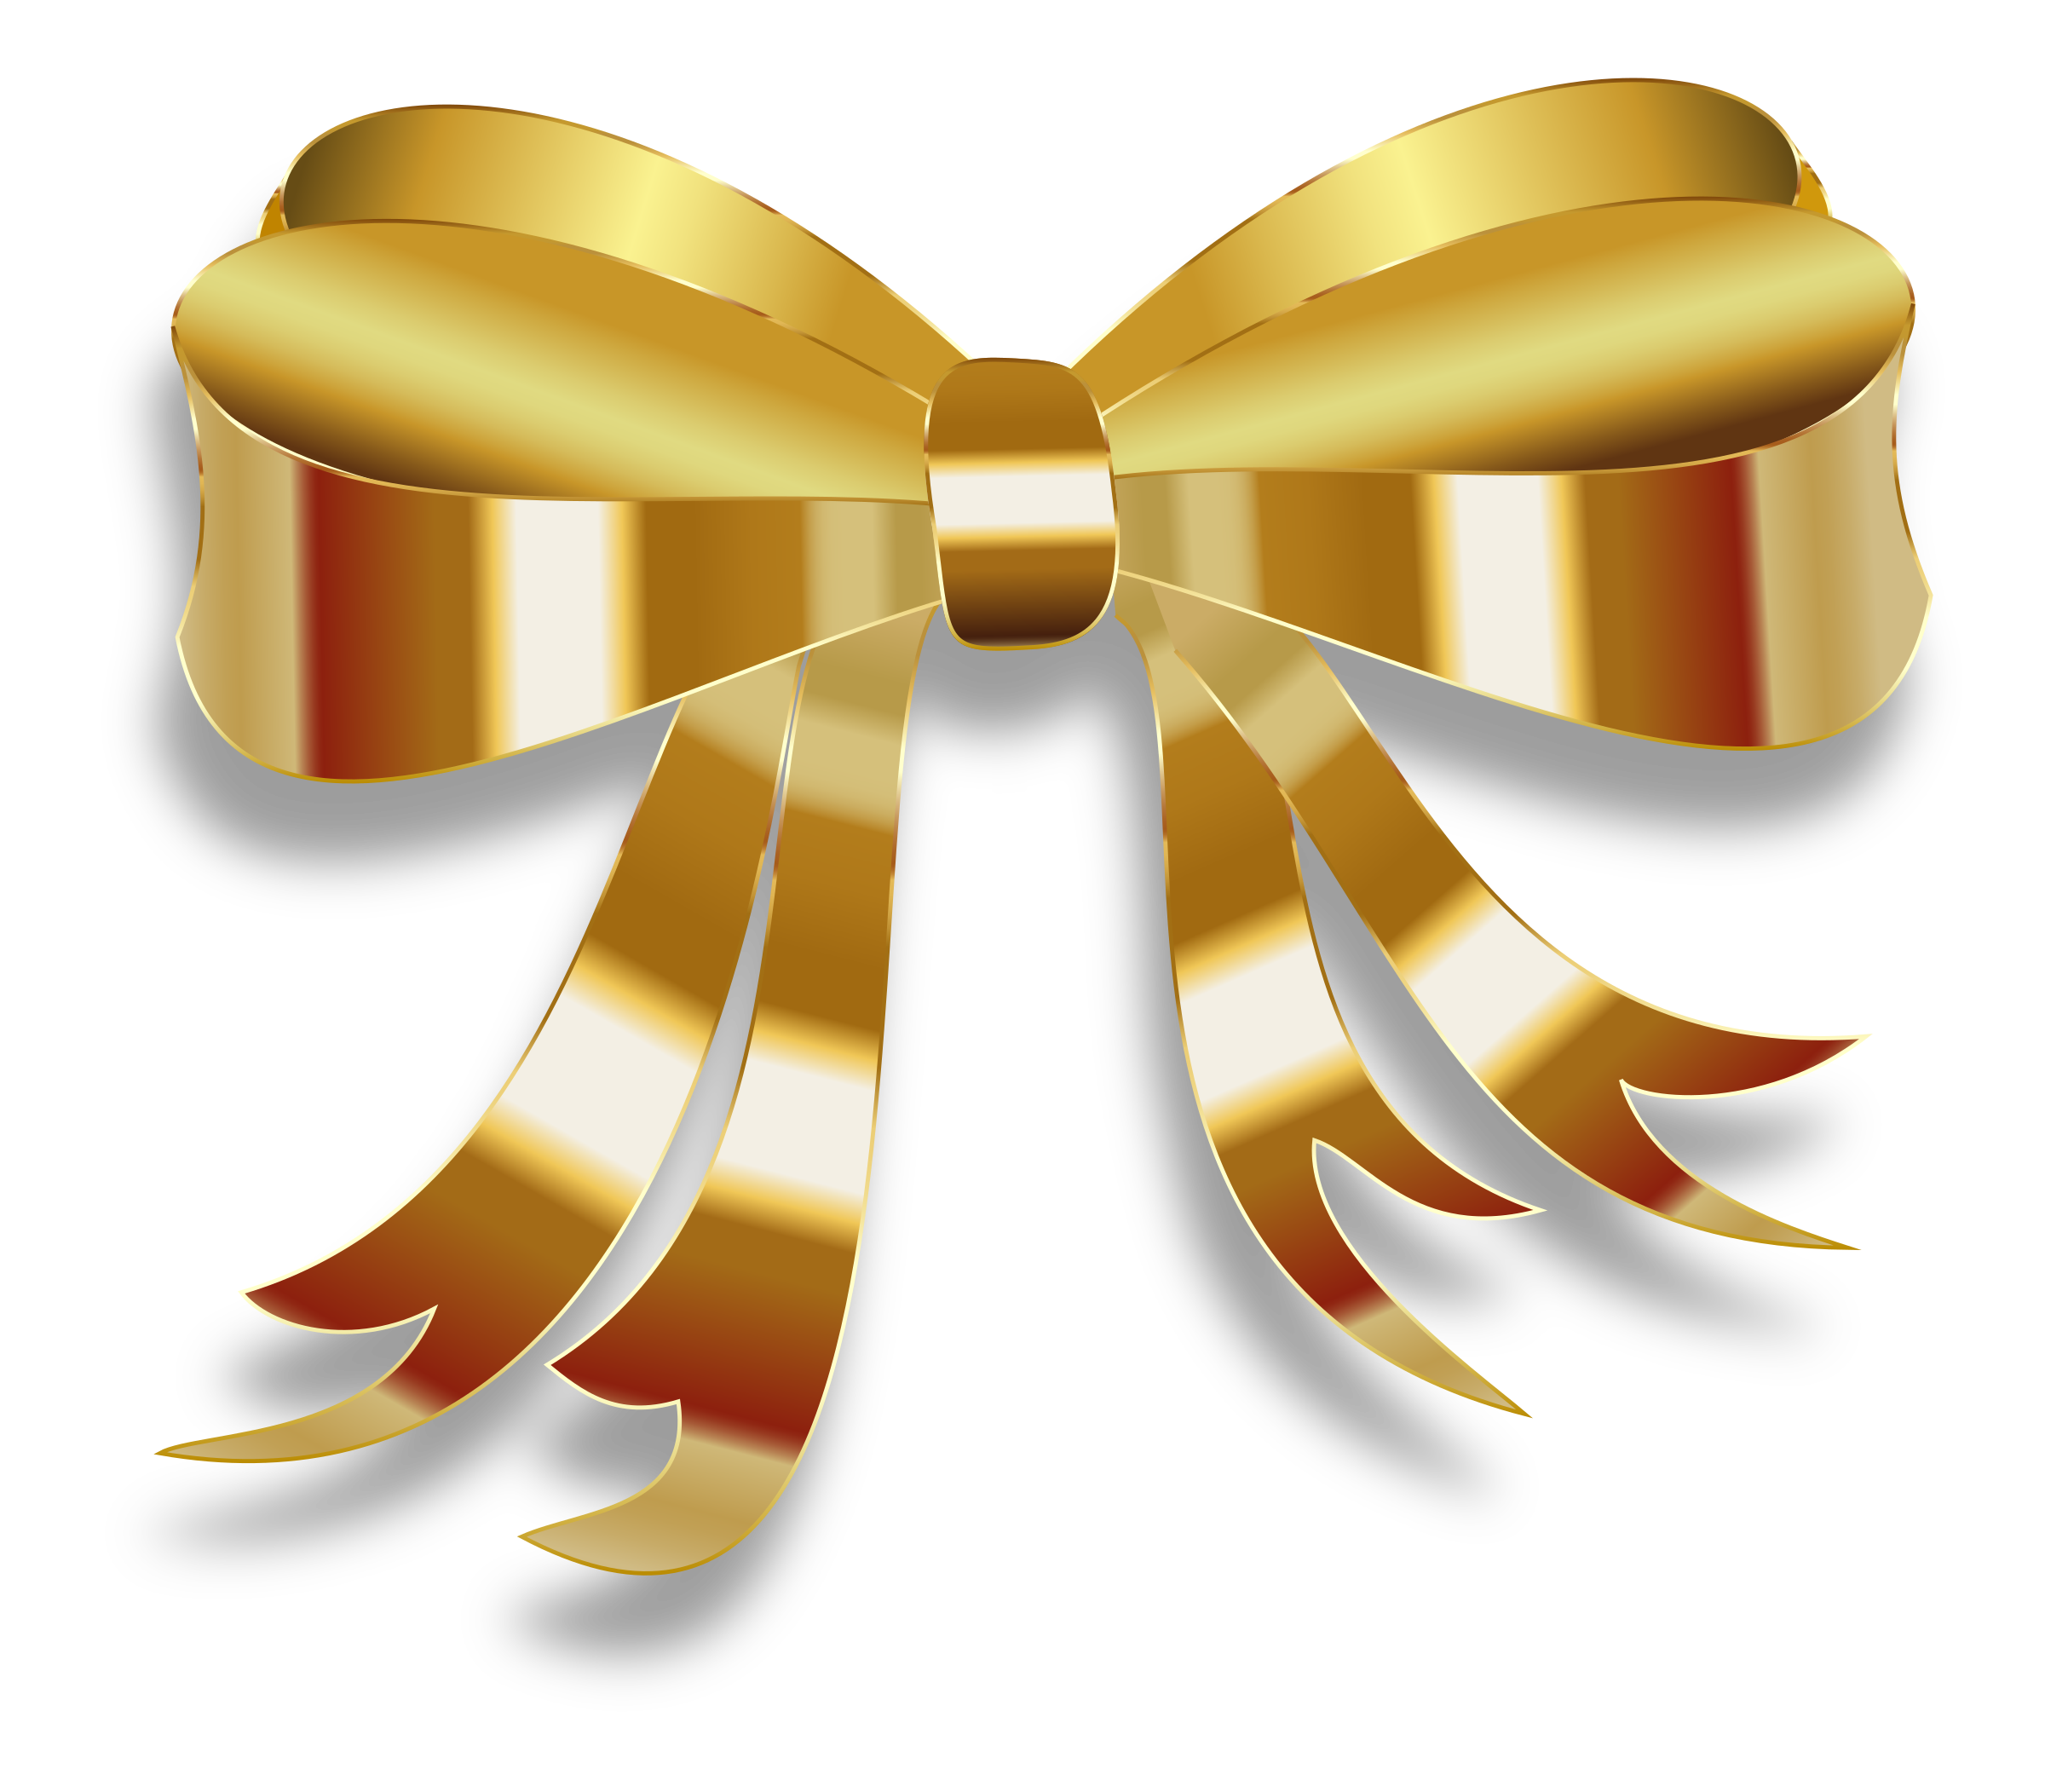 Gold Ribbon Pictures to Pin on Pinterest - ThePinsta